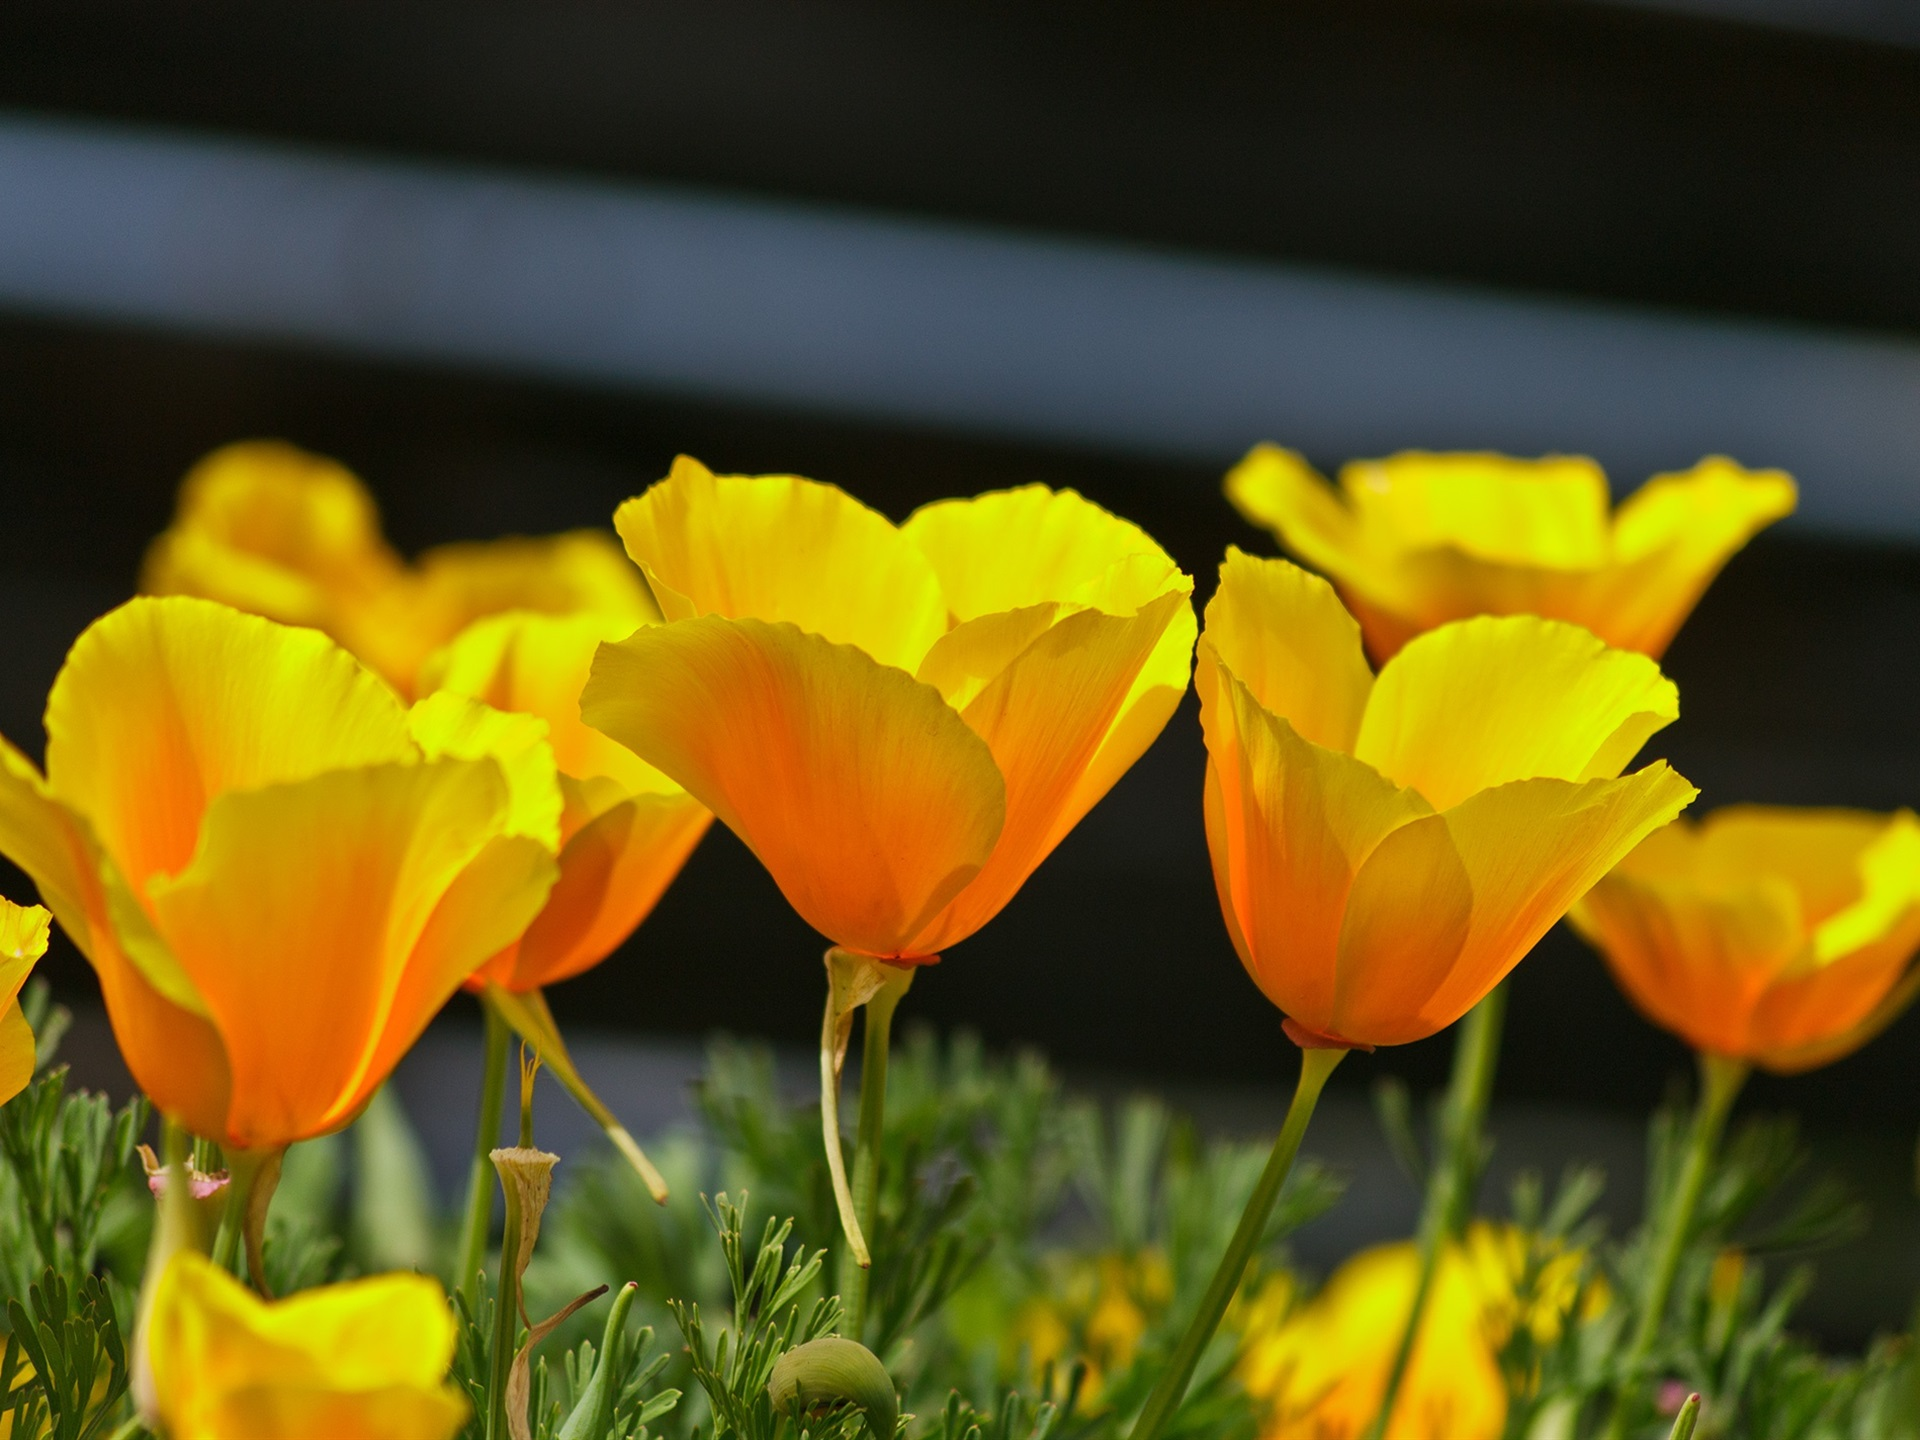 Wallpaper Yellow Poppies Spring Flowers 1920x1440 Hd Picture Image